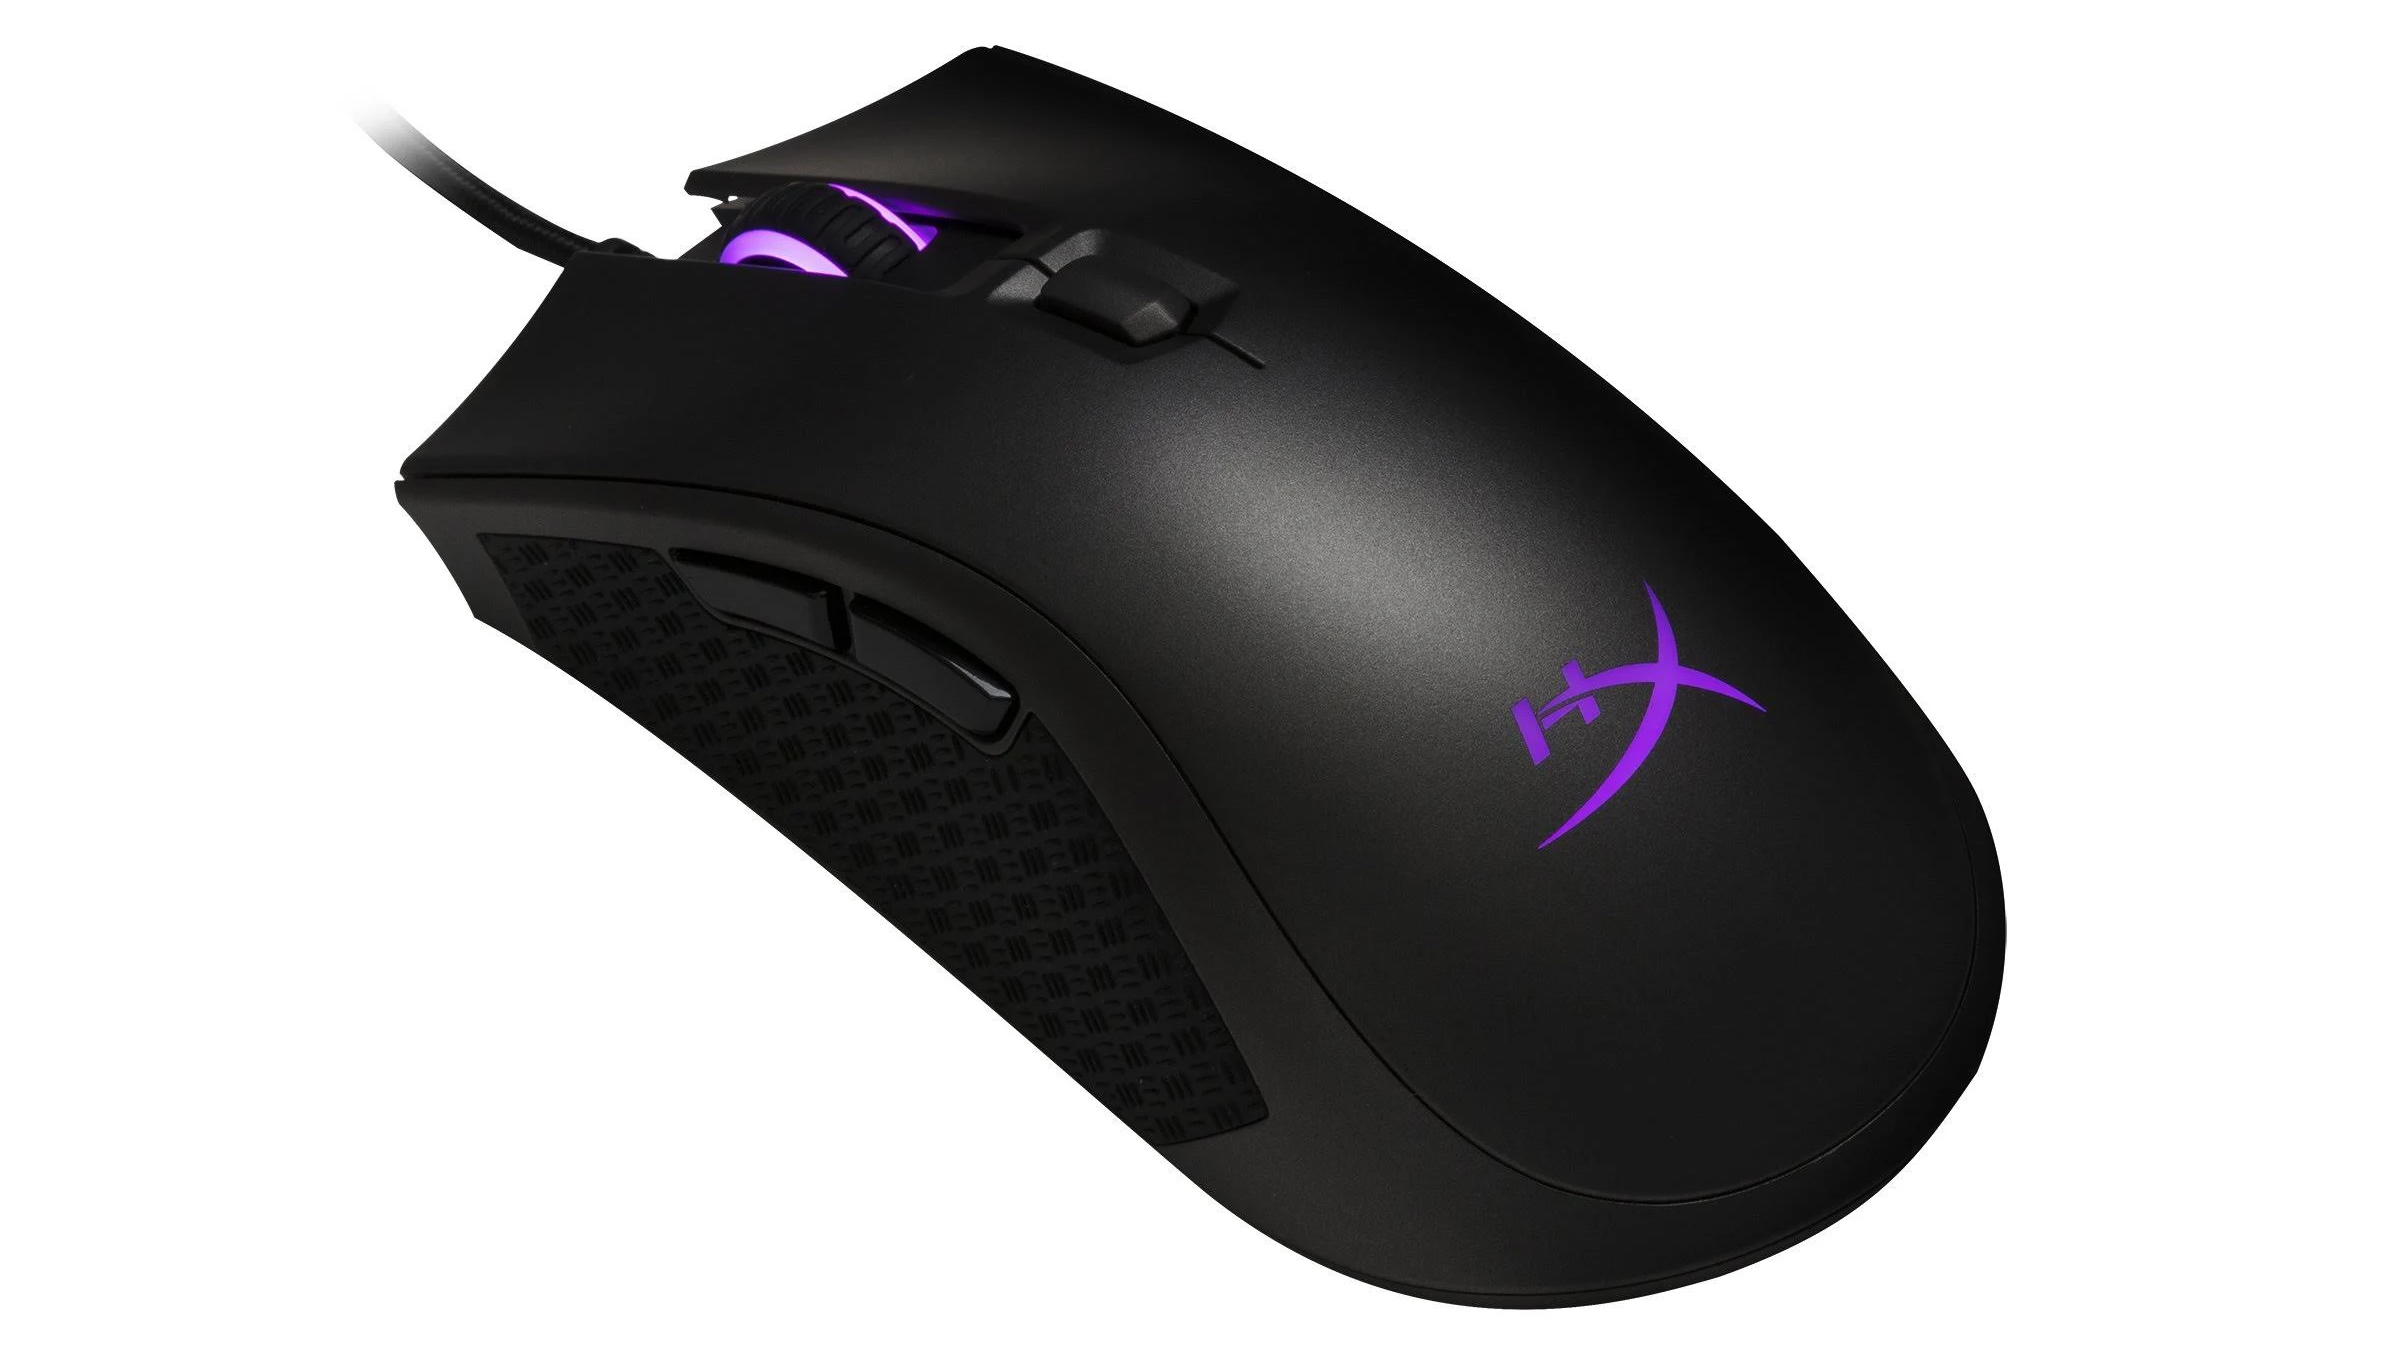 You'll be happy to shell out a little more for what the HyperX Pulsefire Dart has to offer.